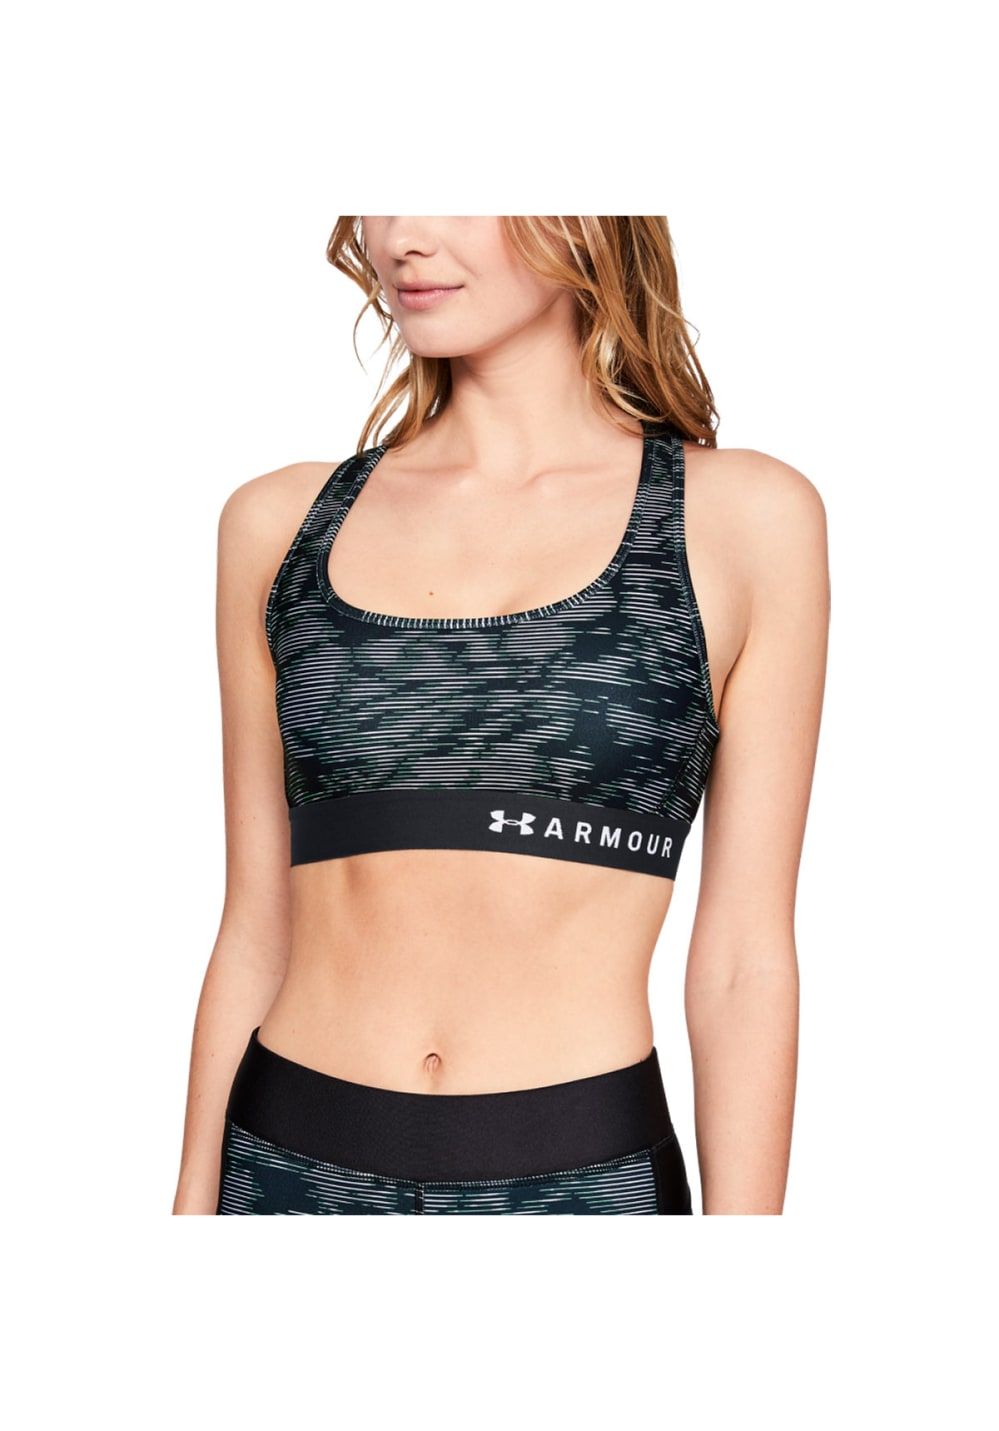 8260b4ed Under Armour Armour Mid Crossback Printed Bra - Sport Bras for Women - Black